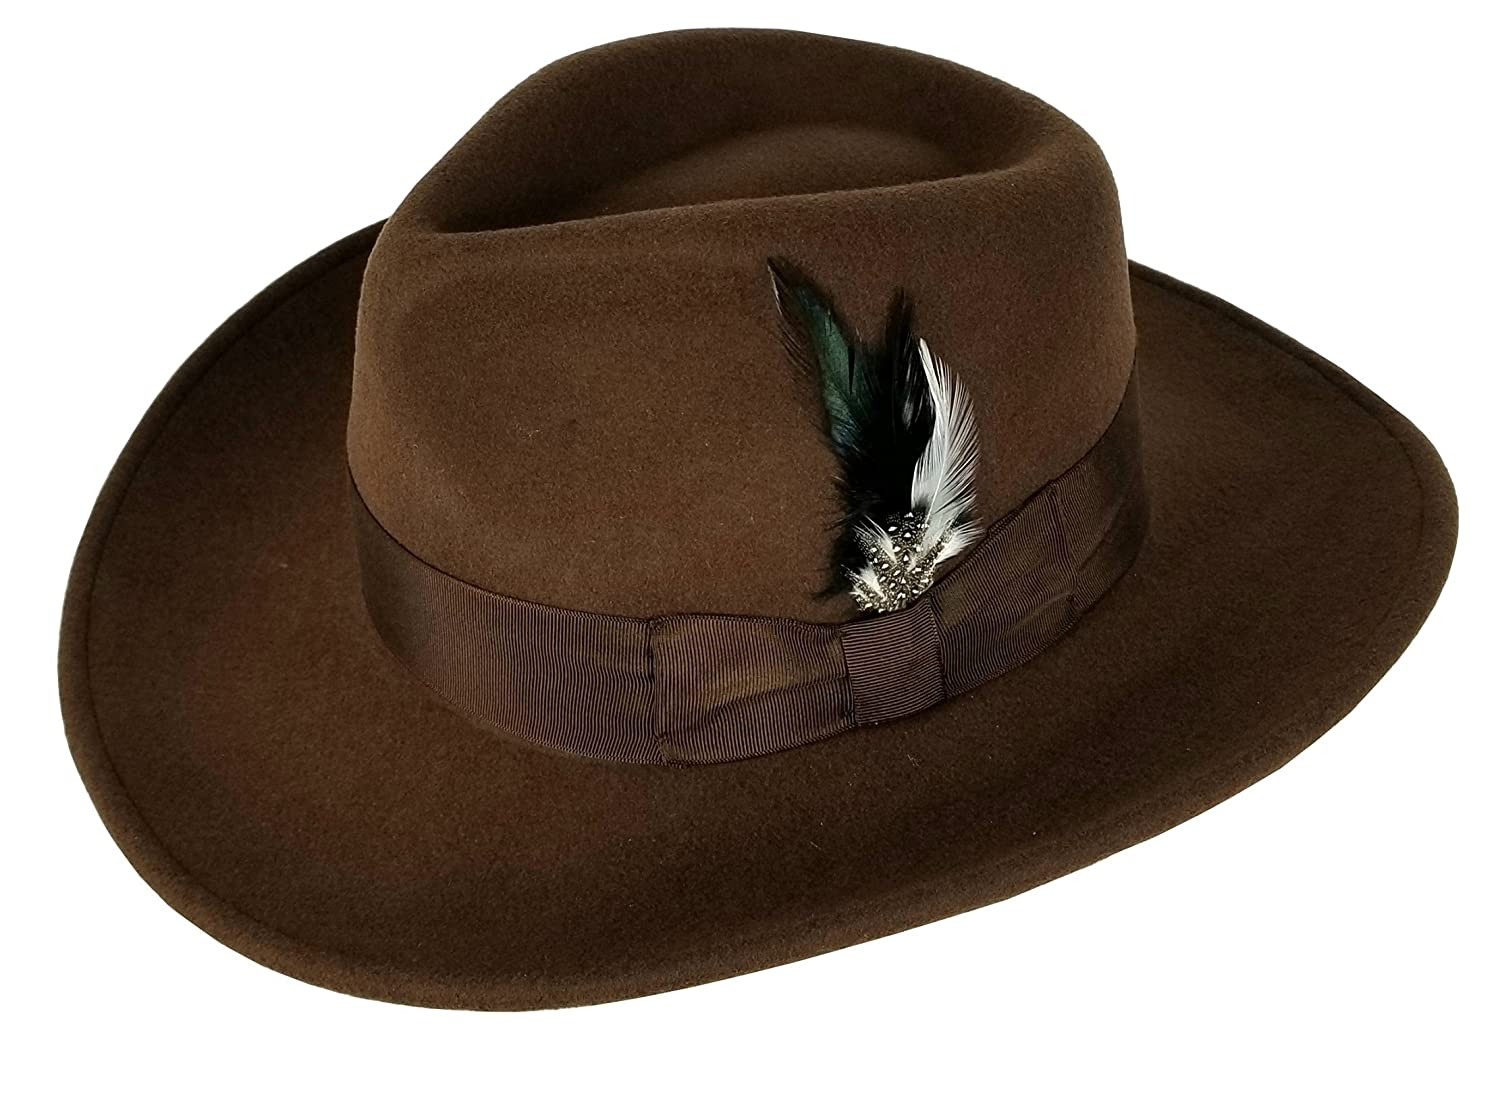 f691553db01 Different Touch Men s 100% Soft   Crushable Wool Felt Indiana Jones Style Cowboy  Fedora Hats HE01 at Amazon Men s Clothing store